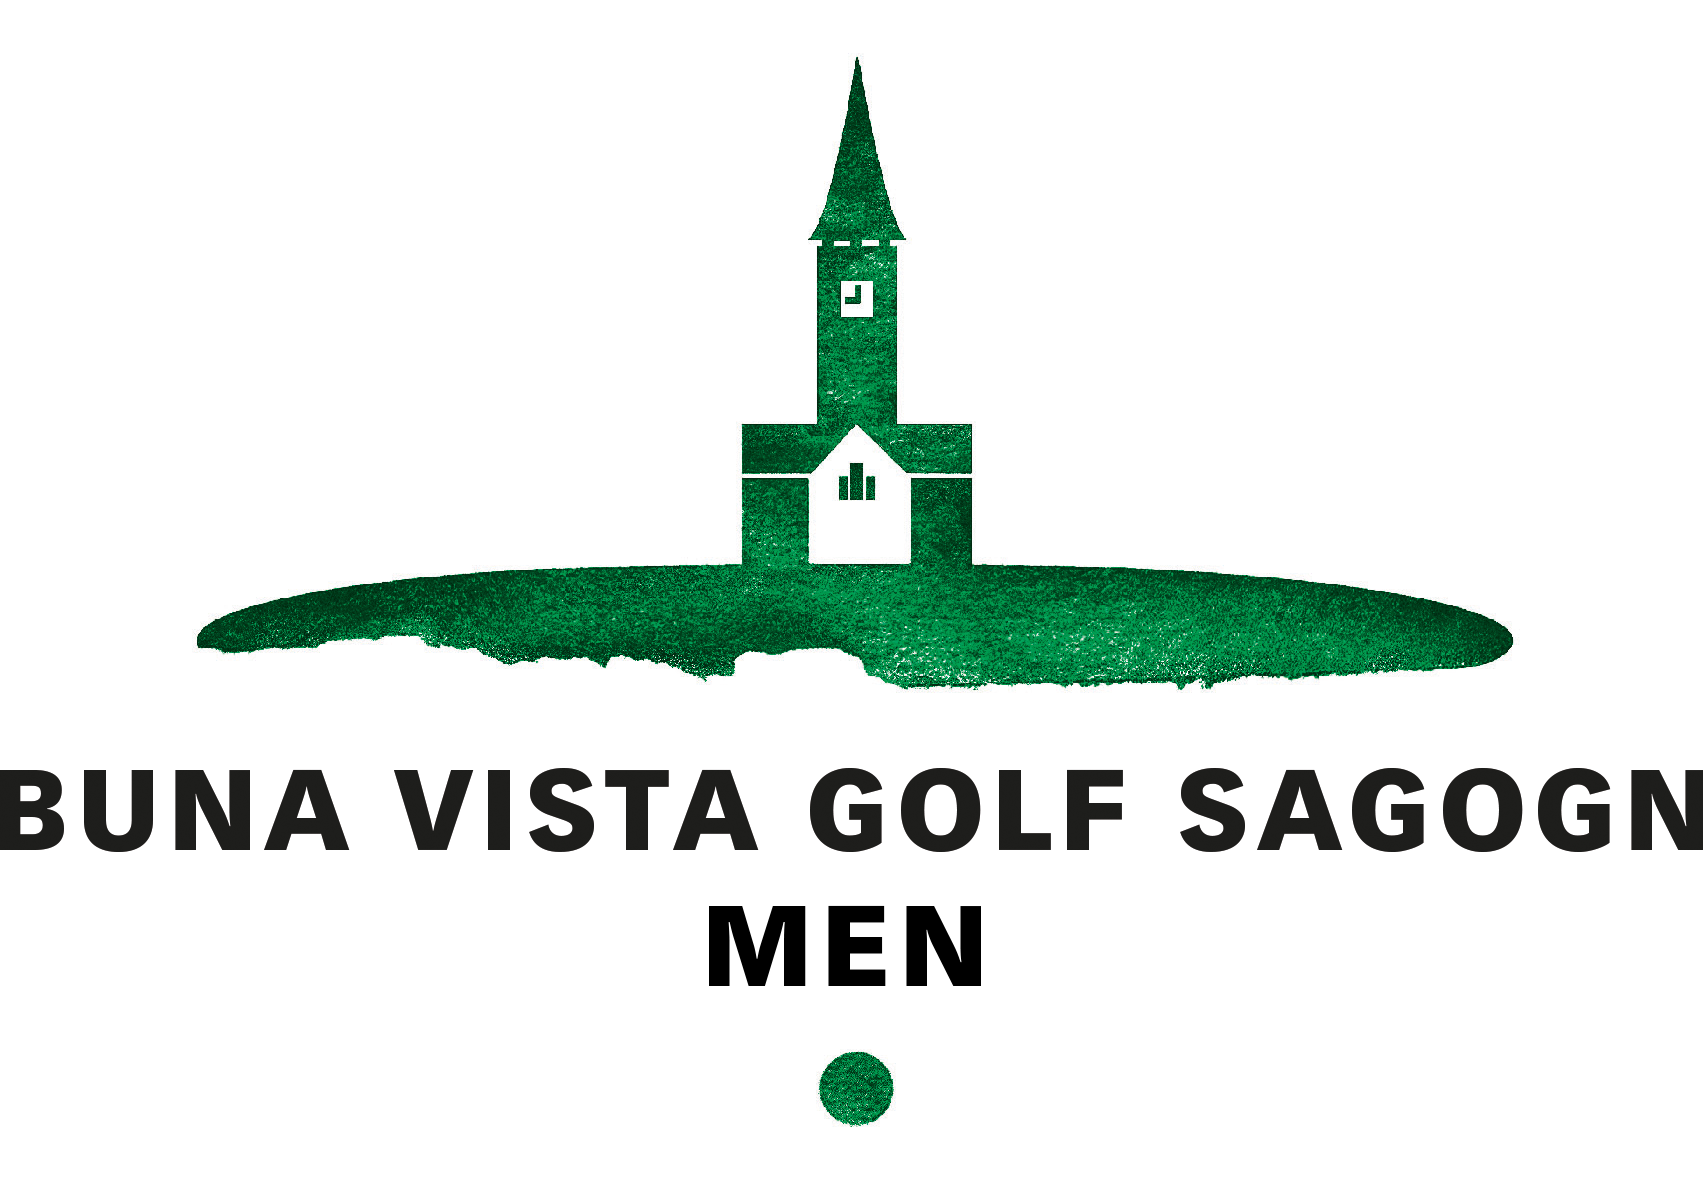 Buna Vista Golf Sagogn Men